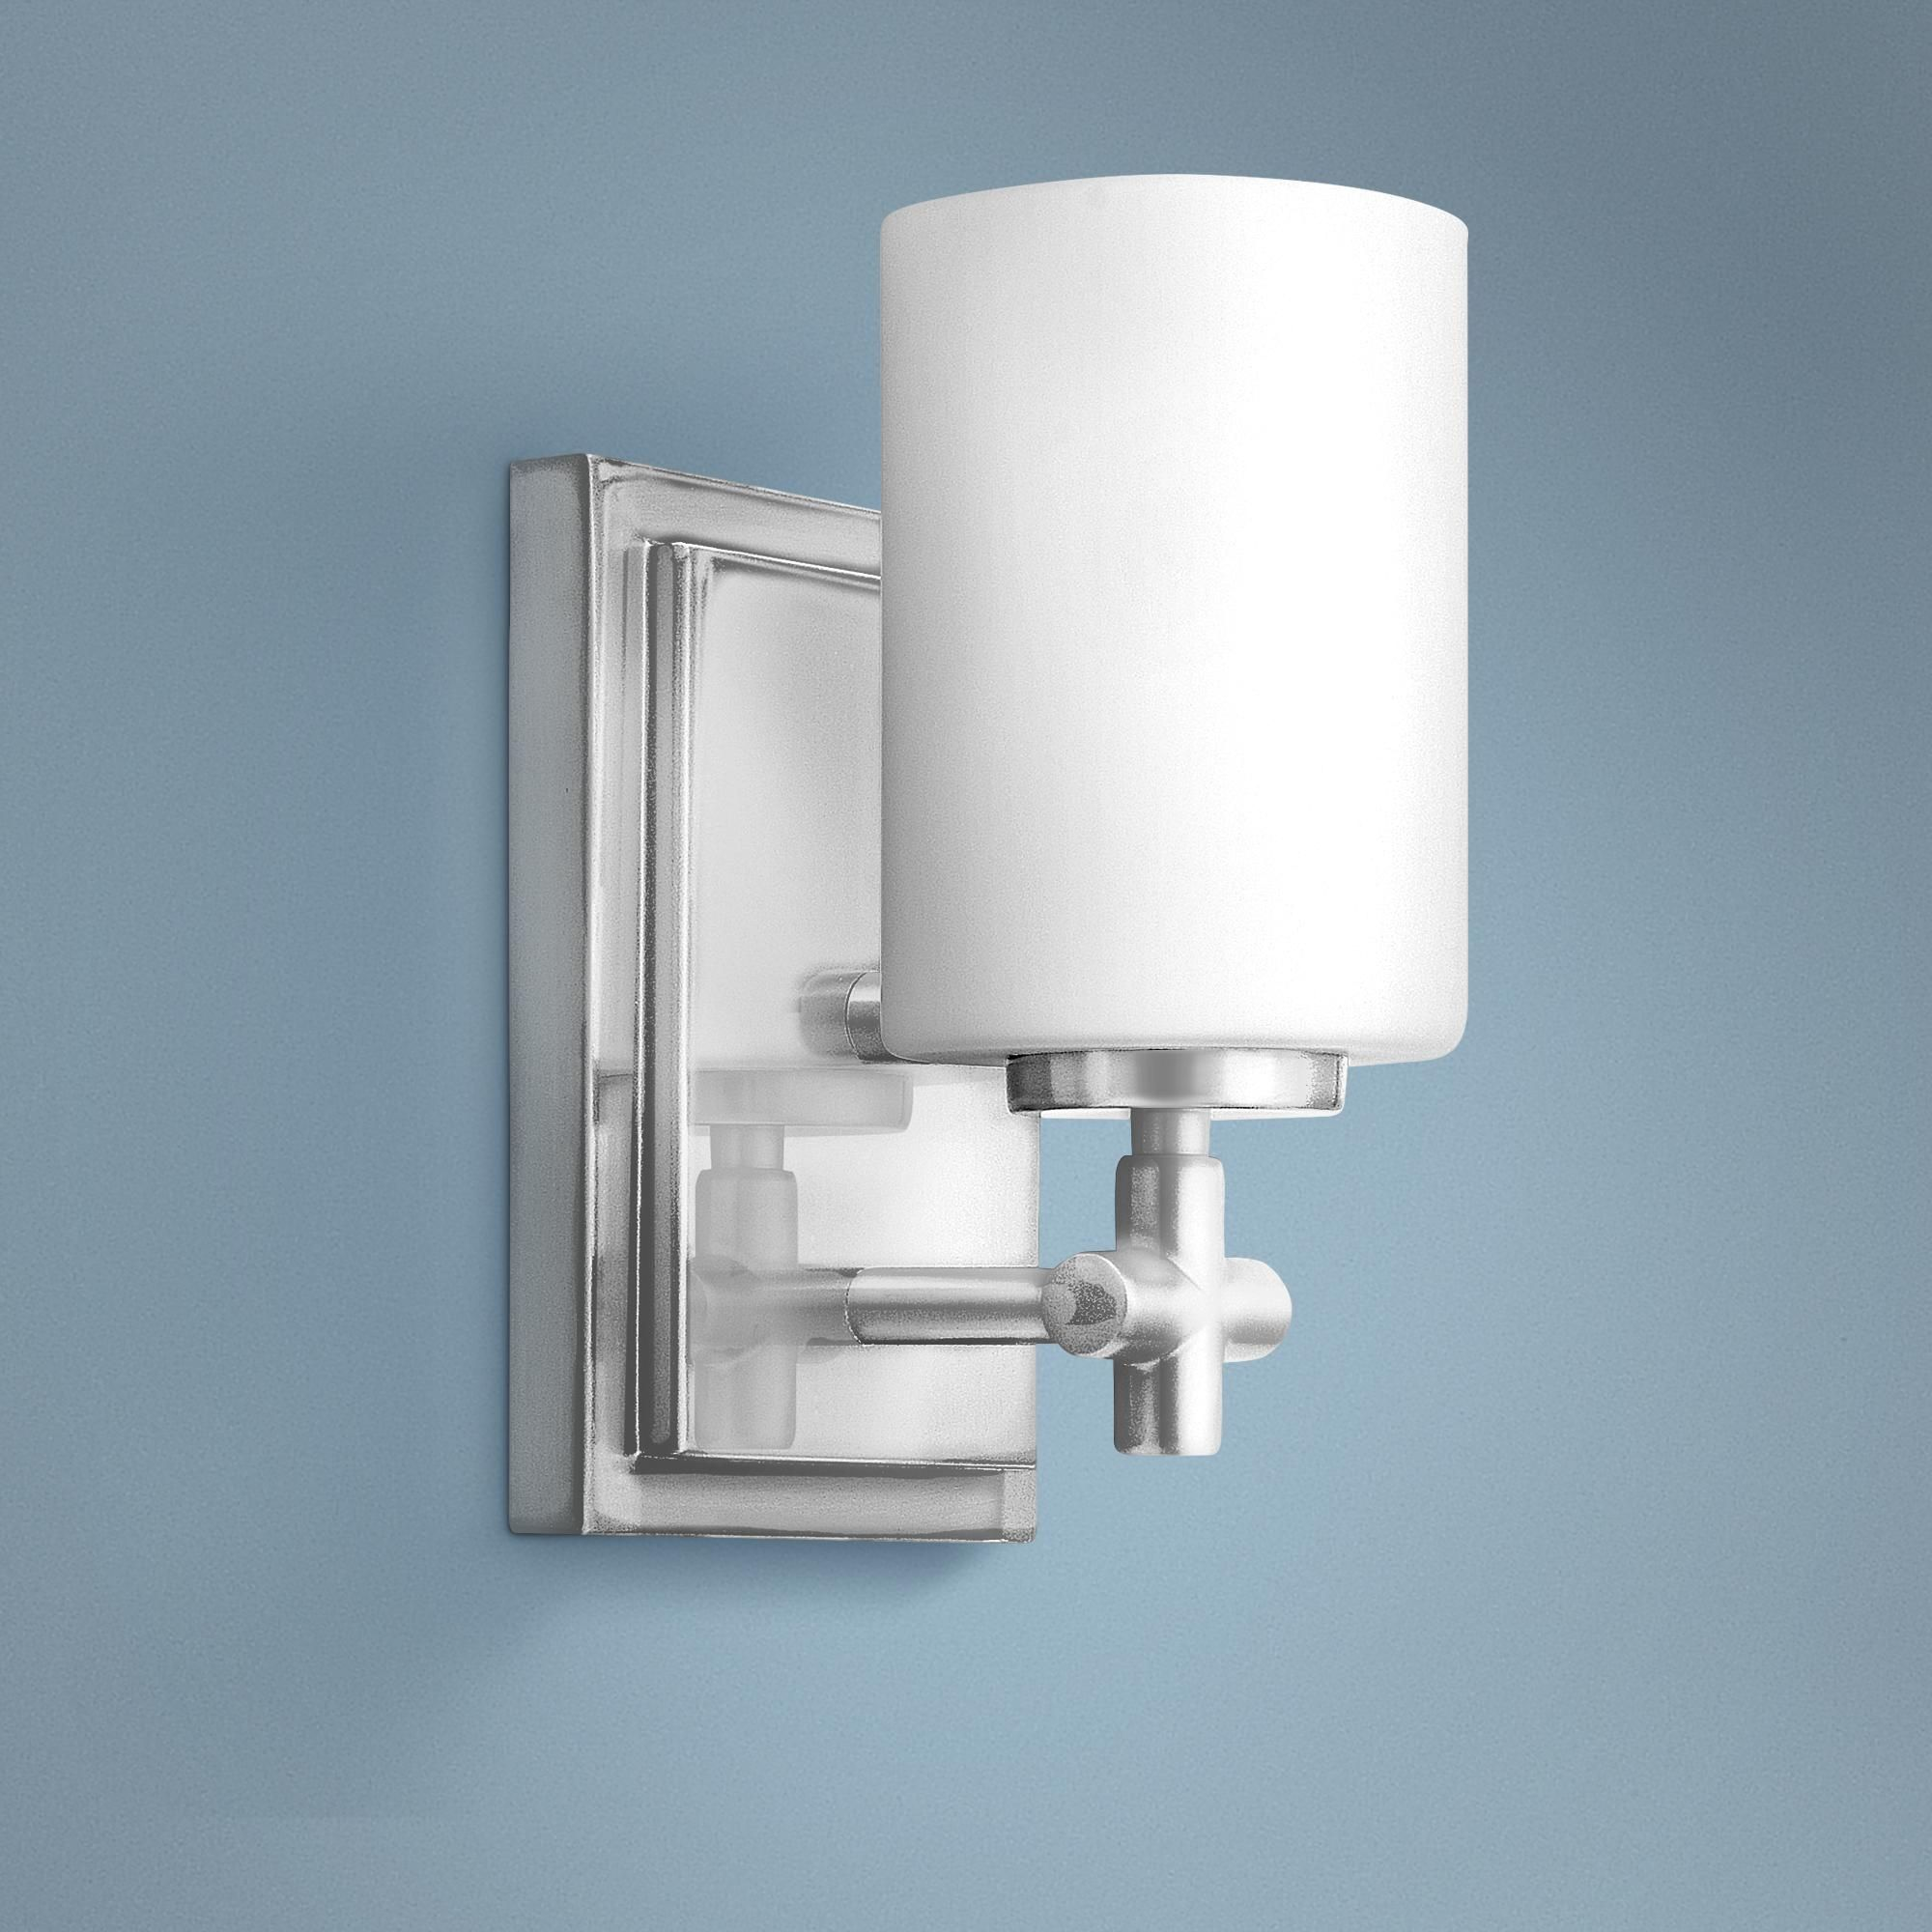 Hinkley Laurel 8 And One Quarter Inch High Polished Nickel Wall Sconce In 2020 Sconces Wall Sconces Polished Nickel